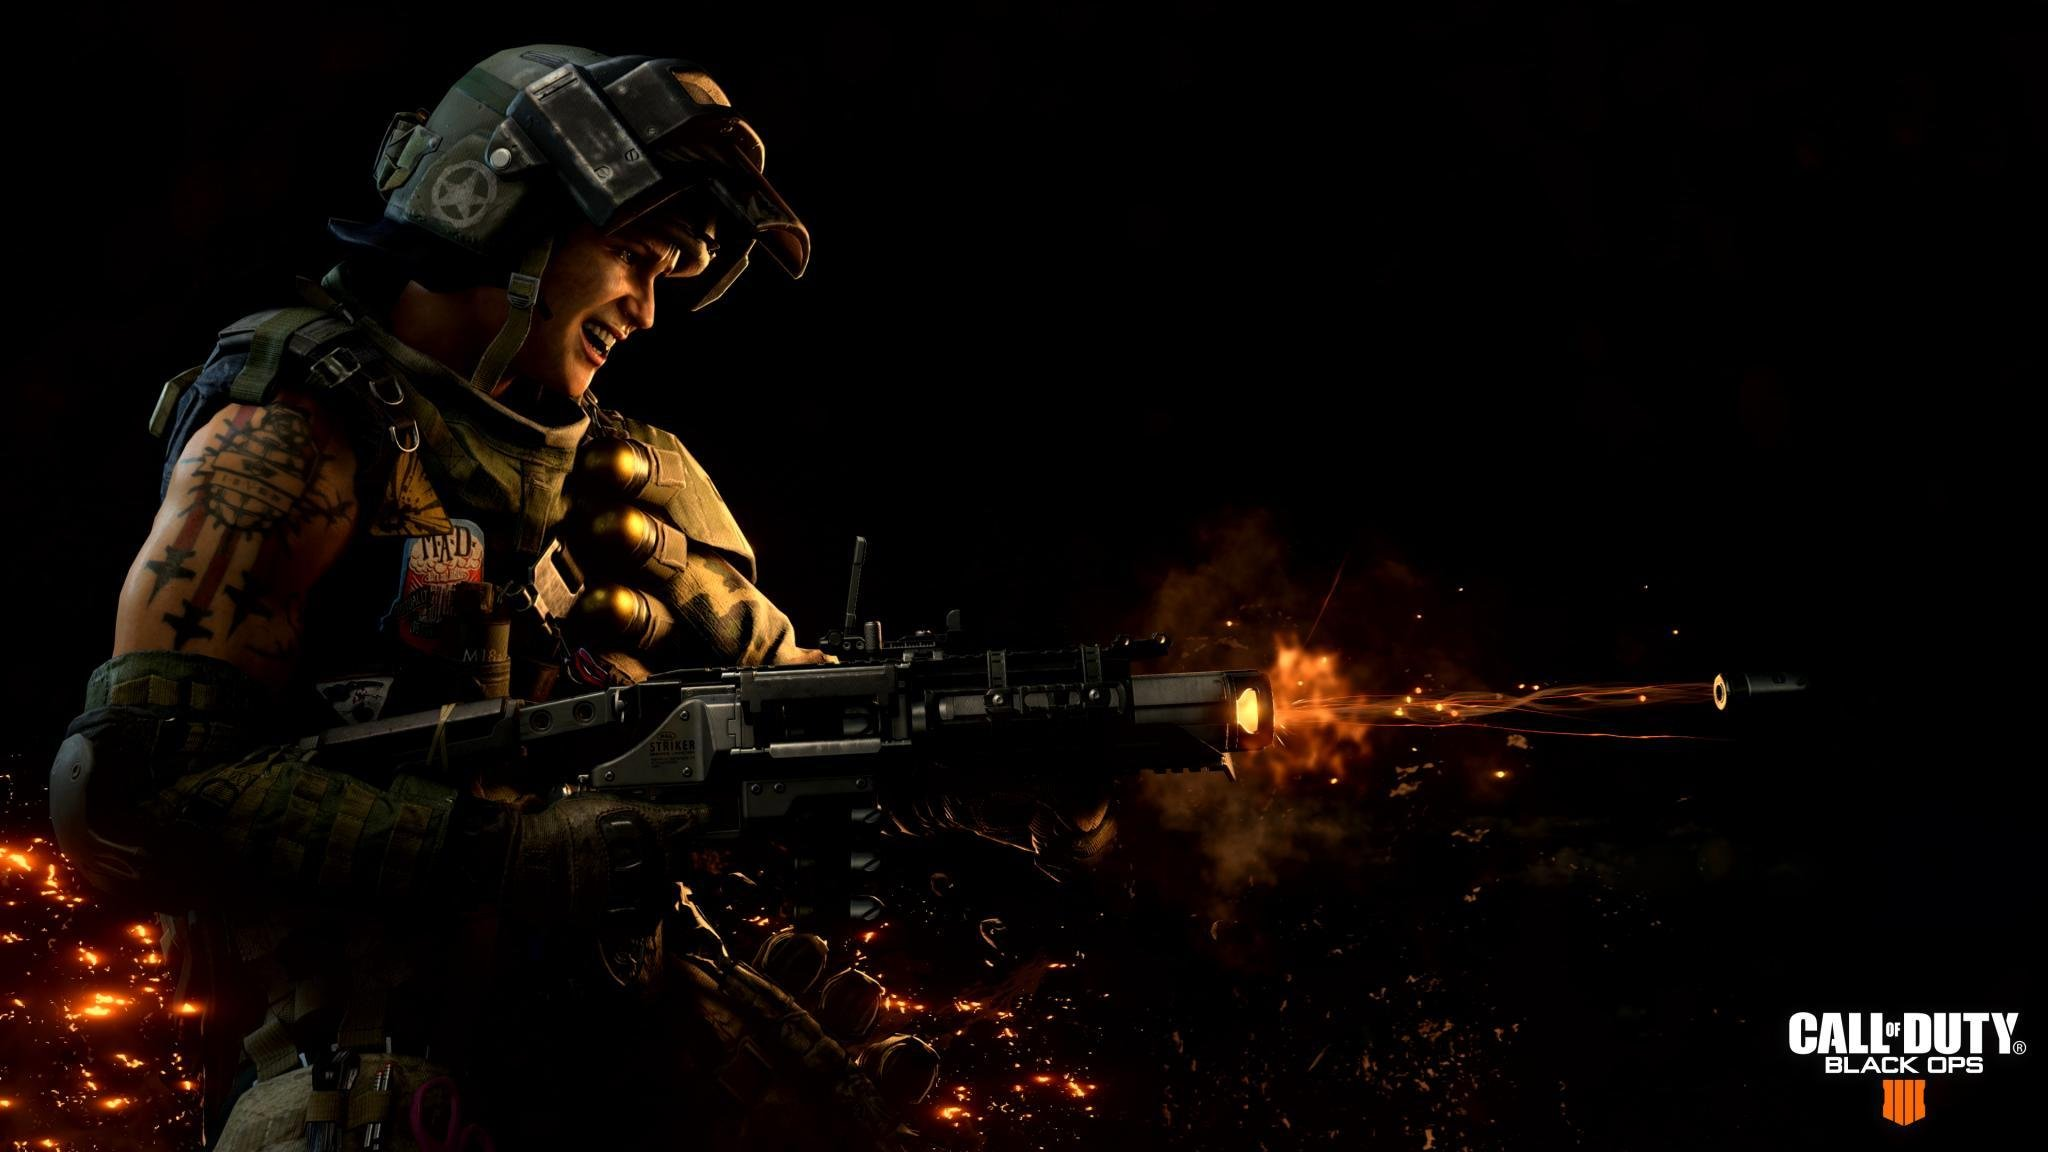 gameplay from black ops multiplayer